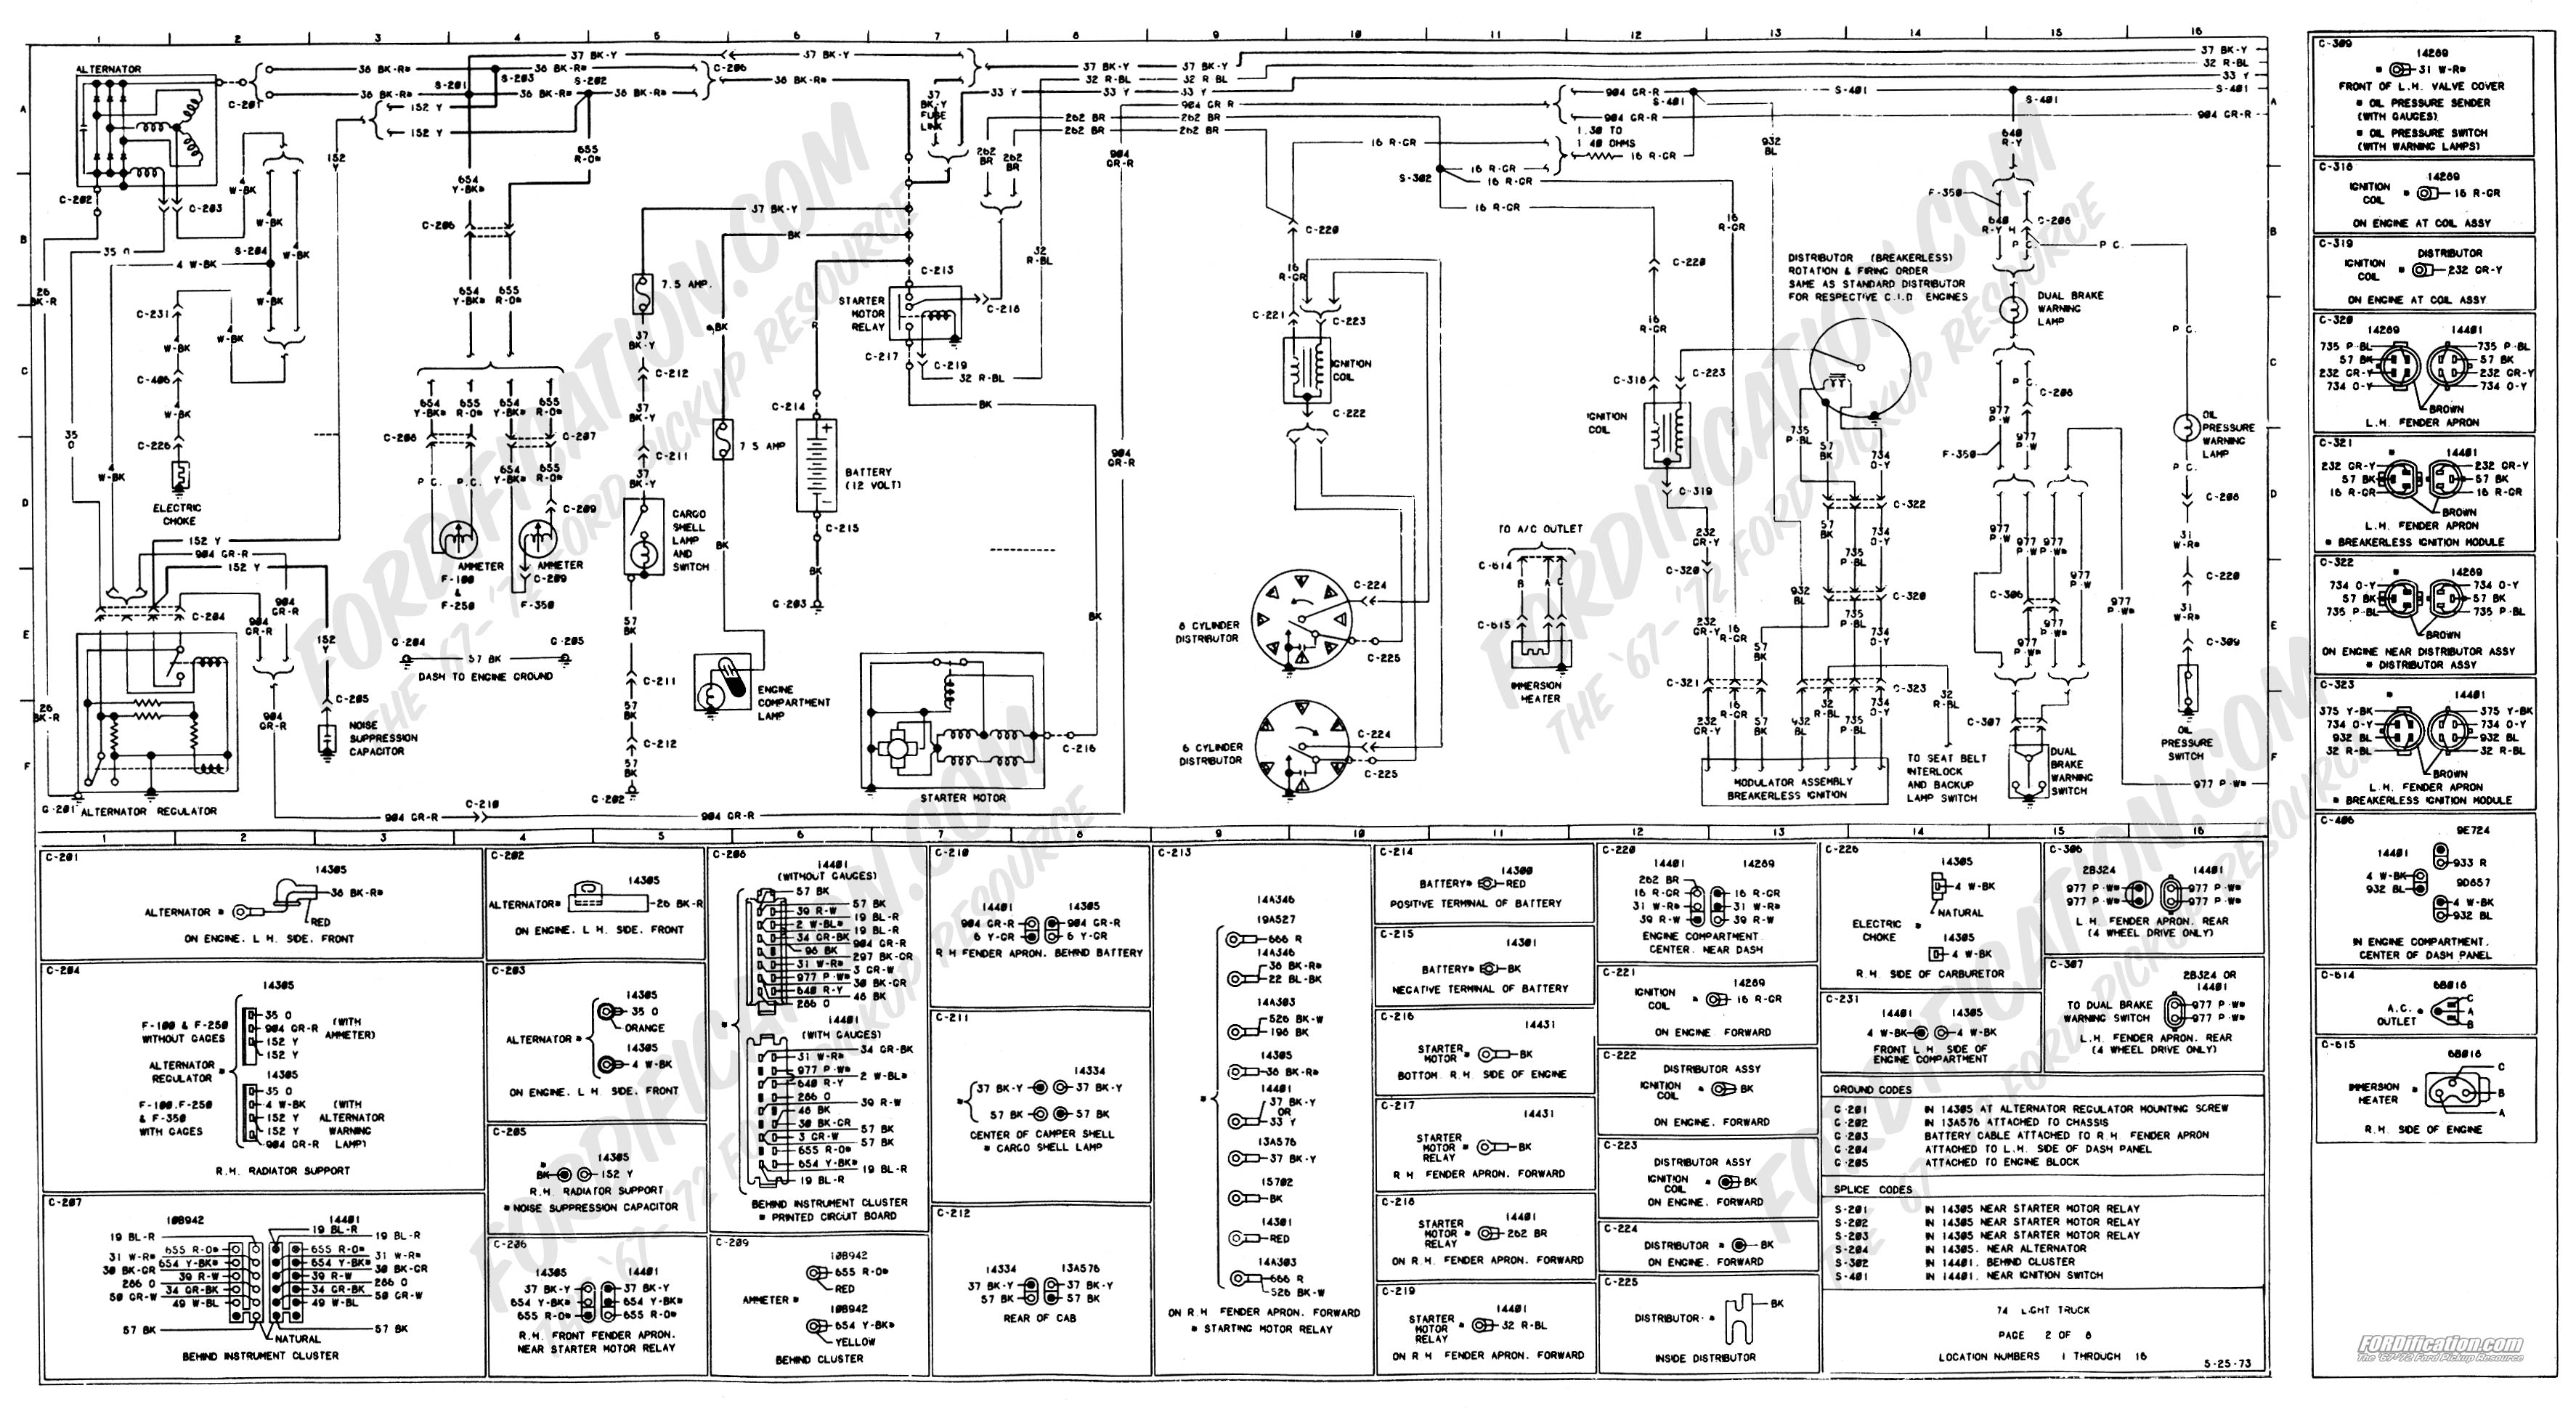 79 F250 Wiring Diagram Library 1978 Chevy 1973 1979 Ford Truck Diagrams Schematics Fordification Net 72